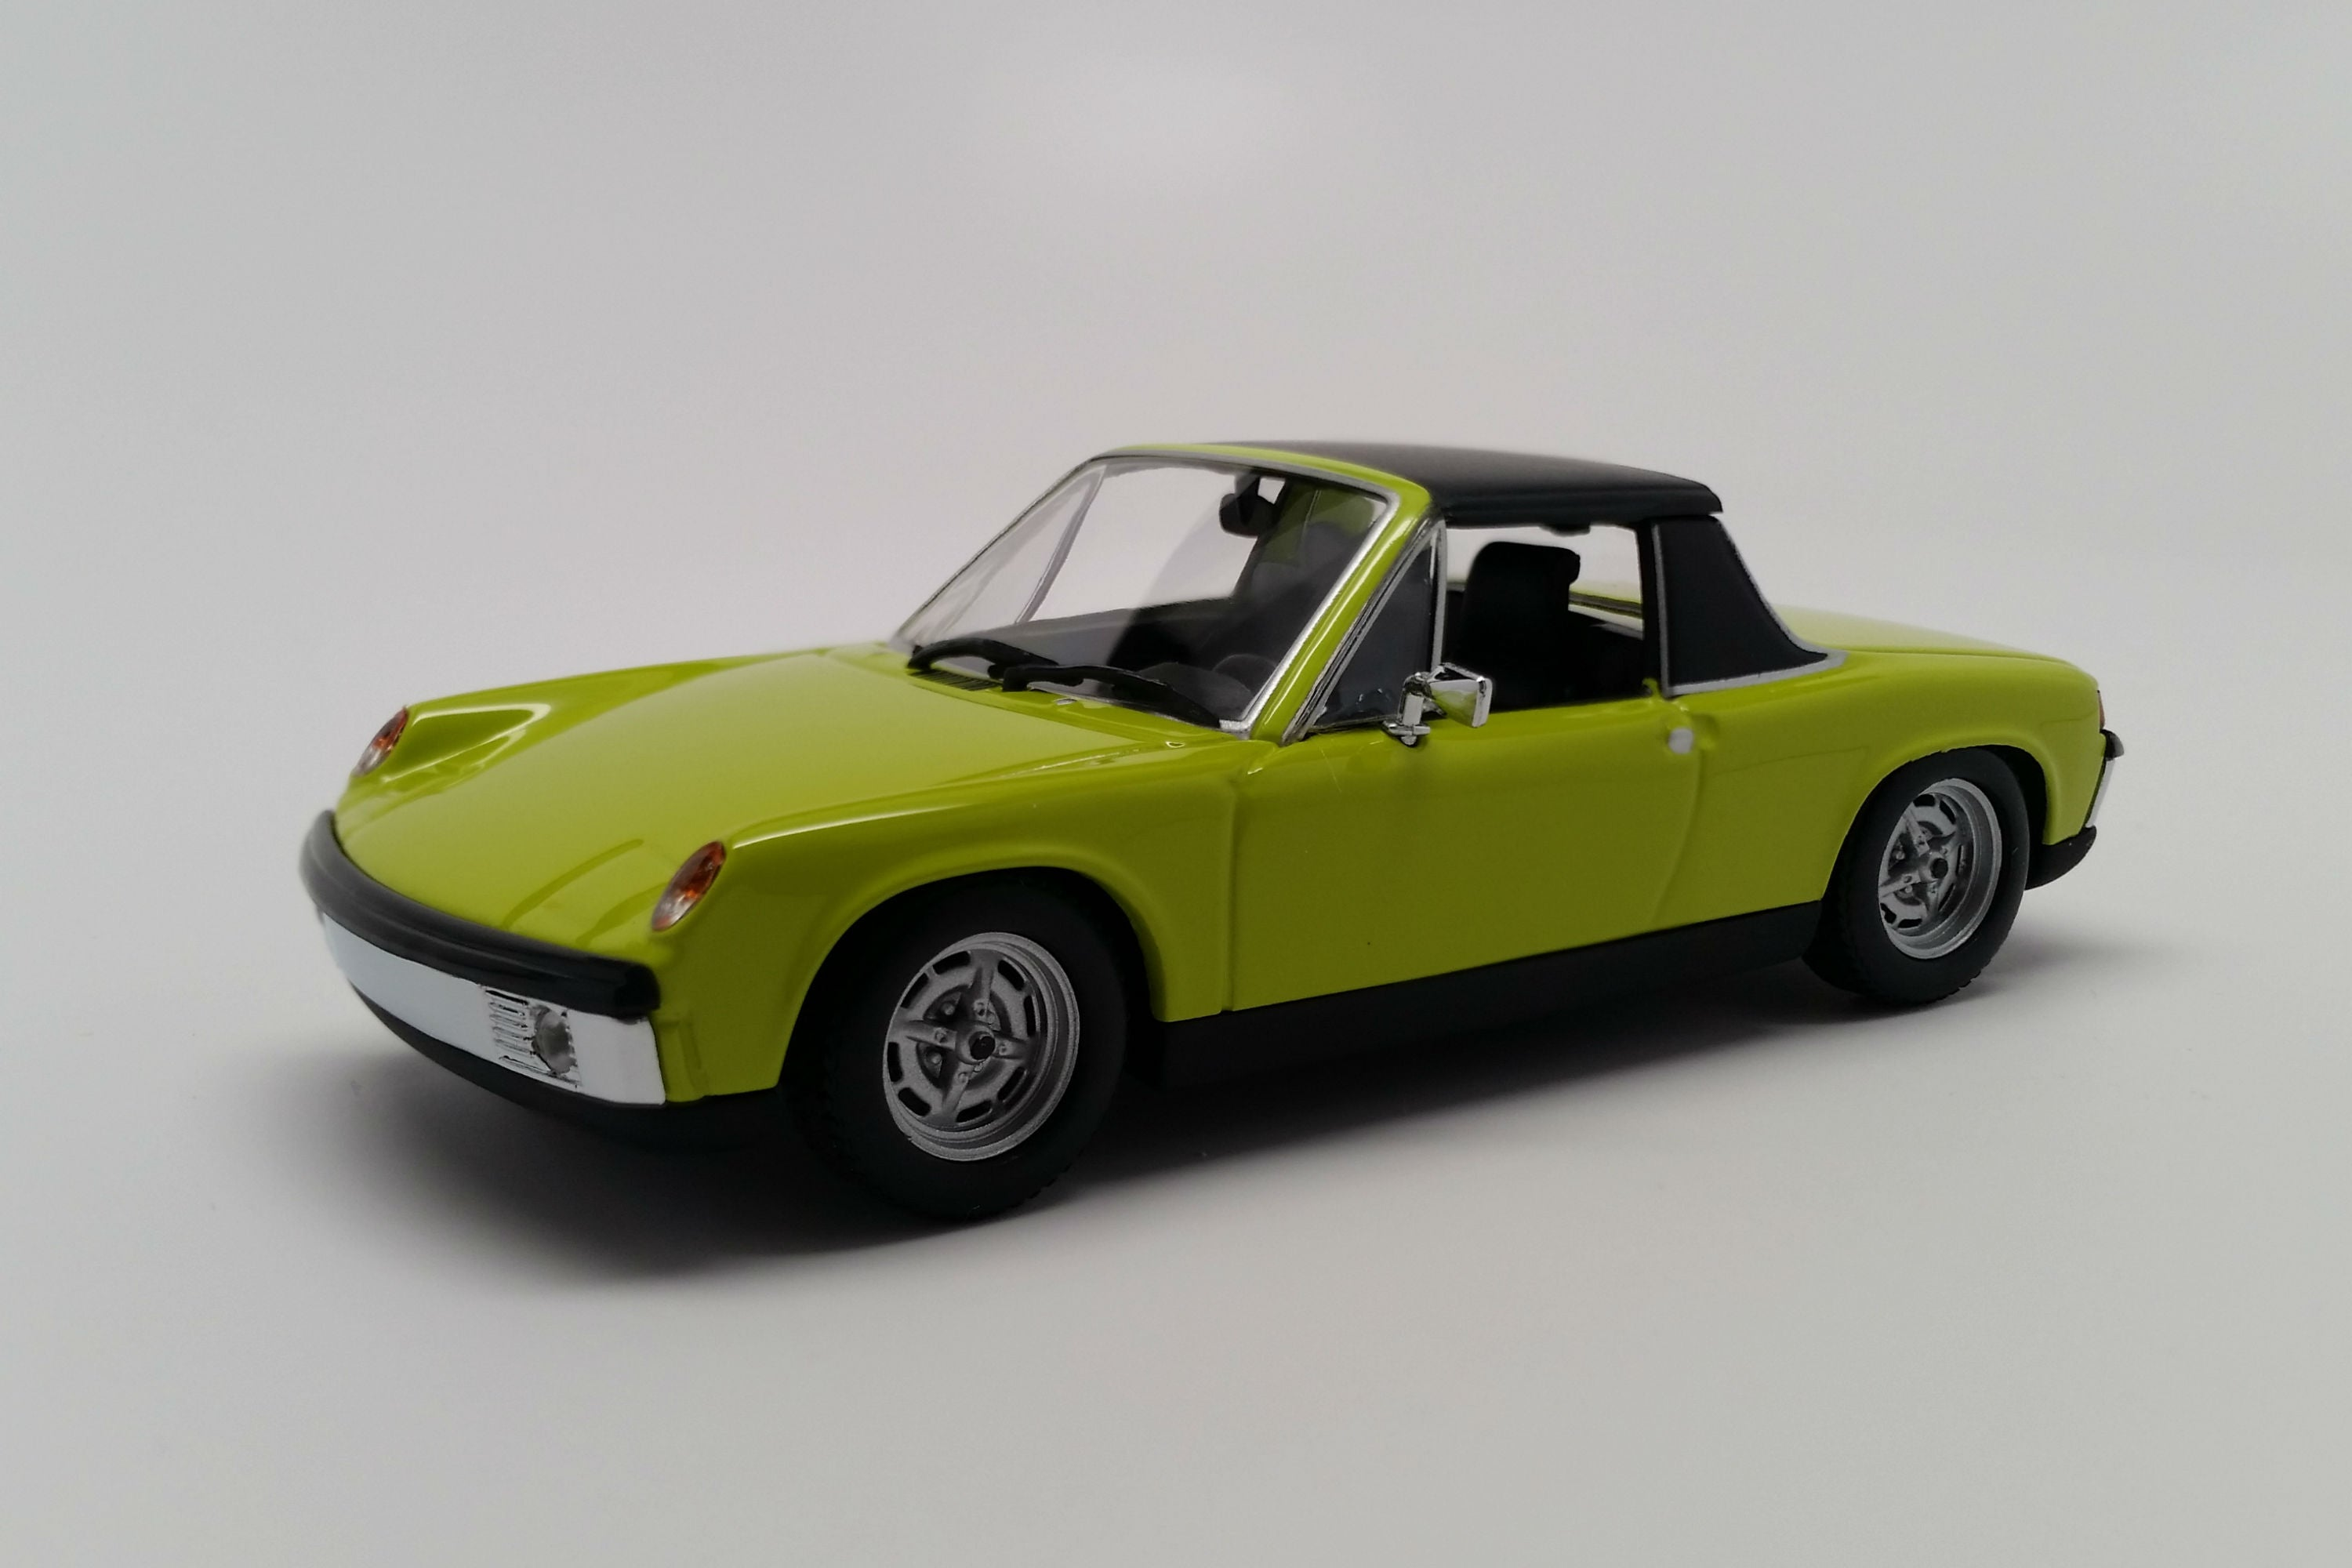 Porsche 914-4 | 1:43 Scale Diecast Model Car by Maxichamps | Front Quarter